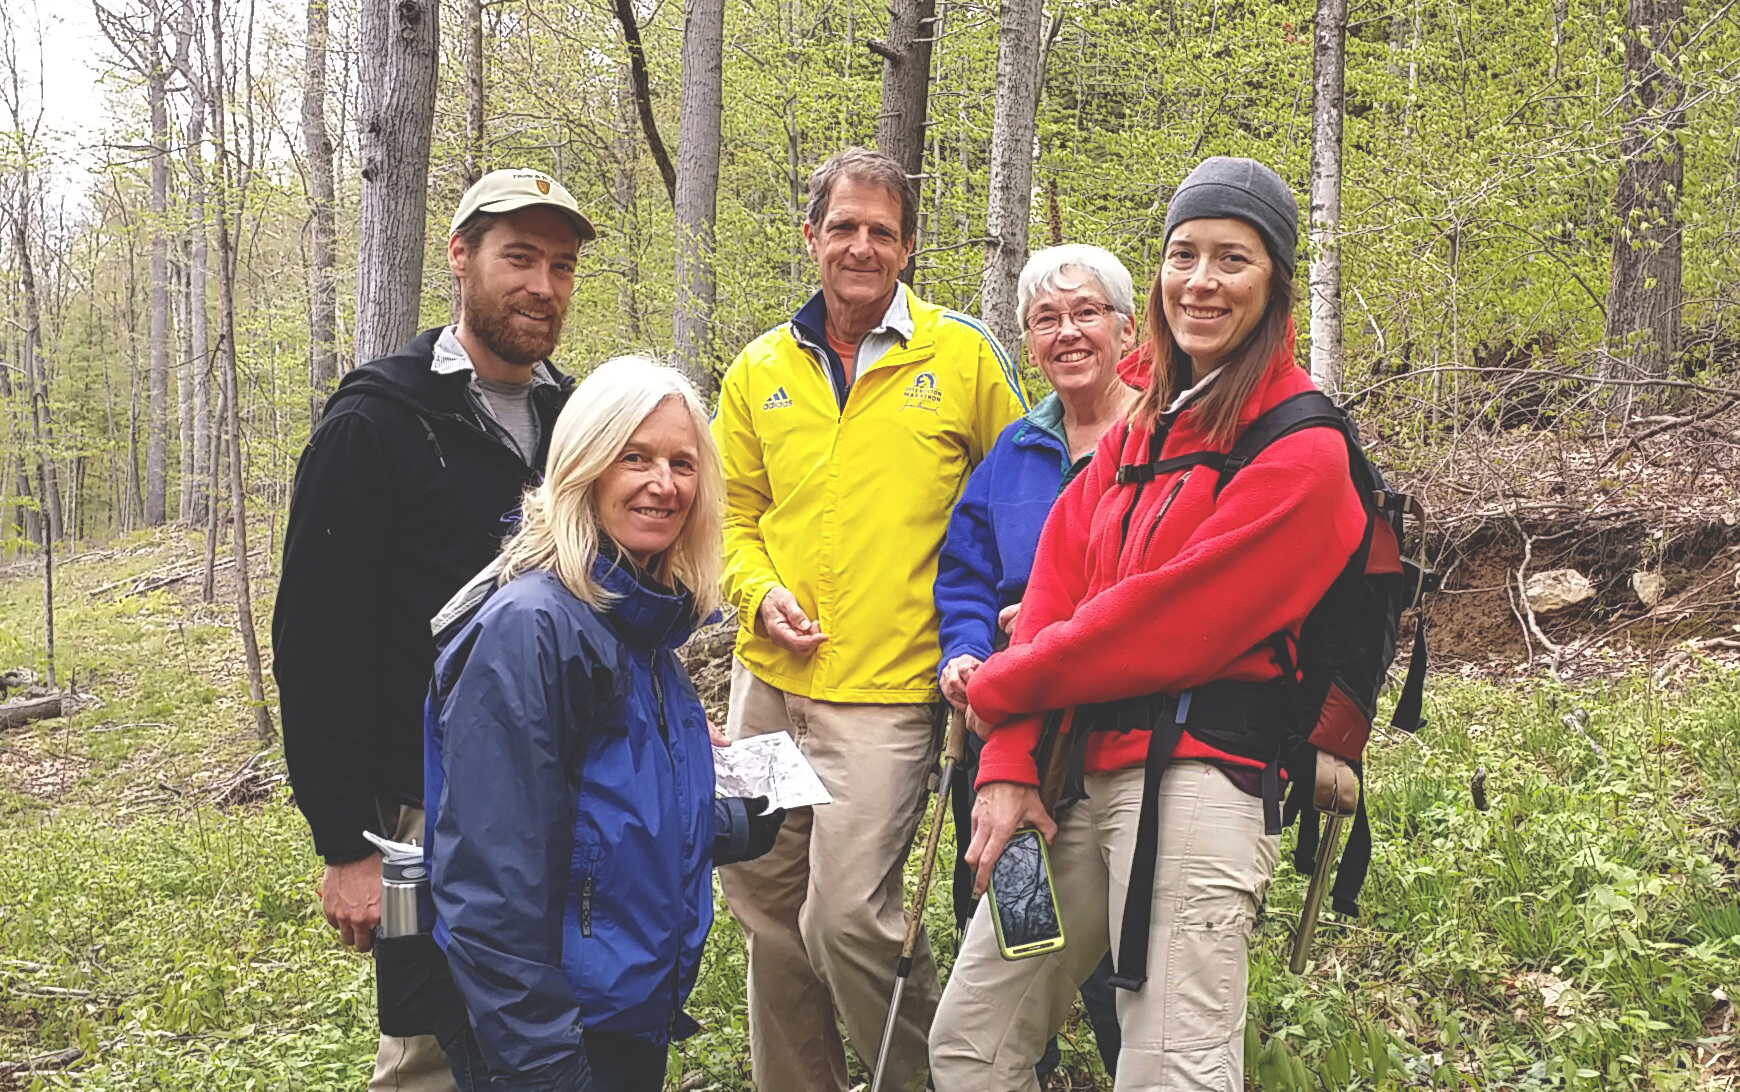 Enjoying a hike on newly conserved land, from left: Nancy Everhart, of Vermont Housing & Conservation Board; Dan Healey, Geordie Heller, and Pat Shields from Putney Mountain Association, and Allaire Diamond from Vermont Land Trust.